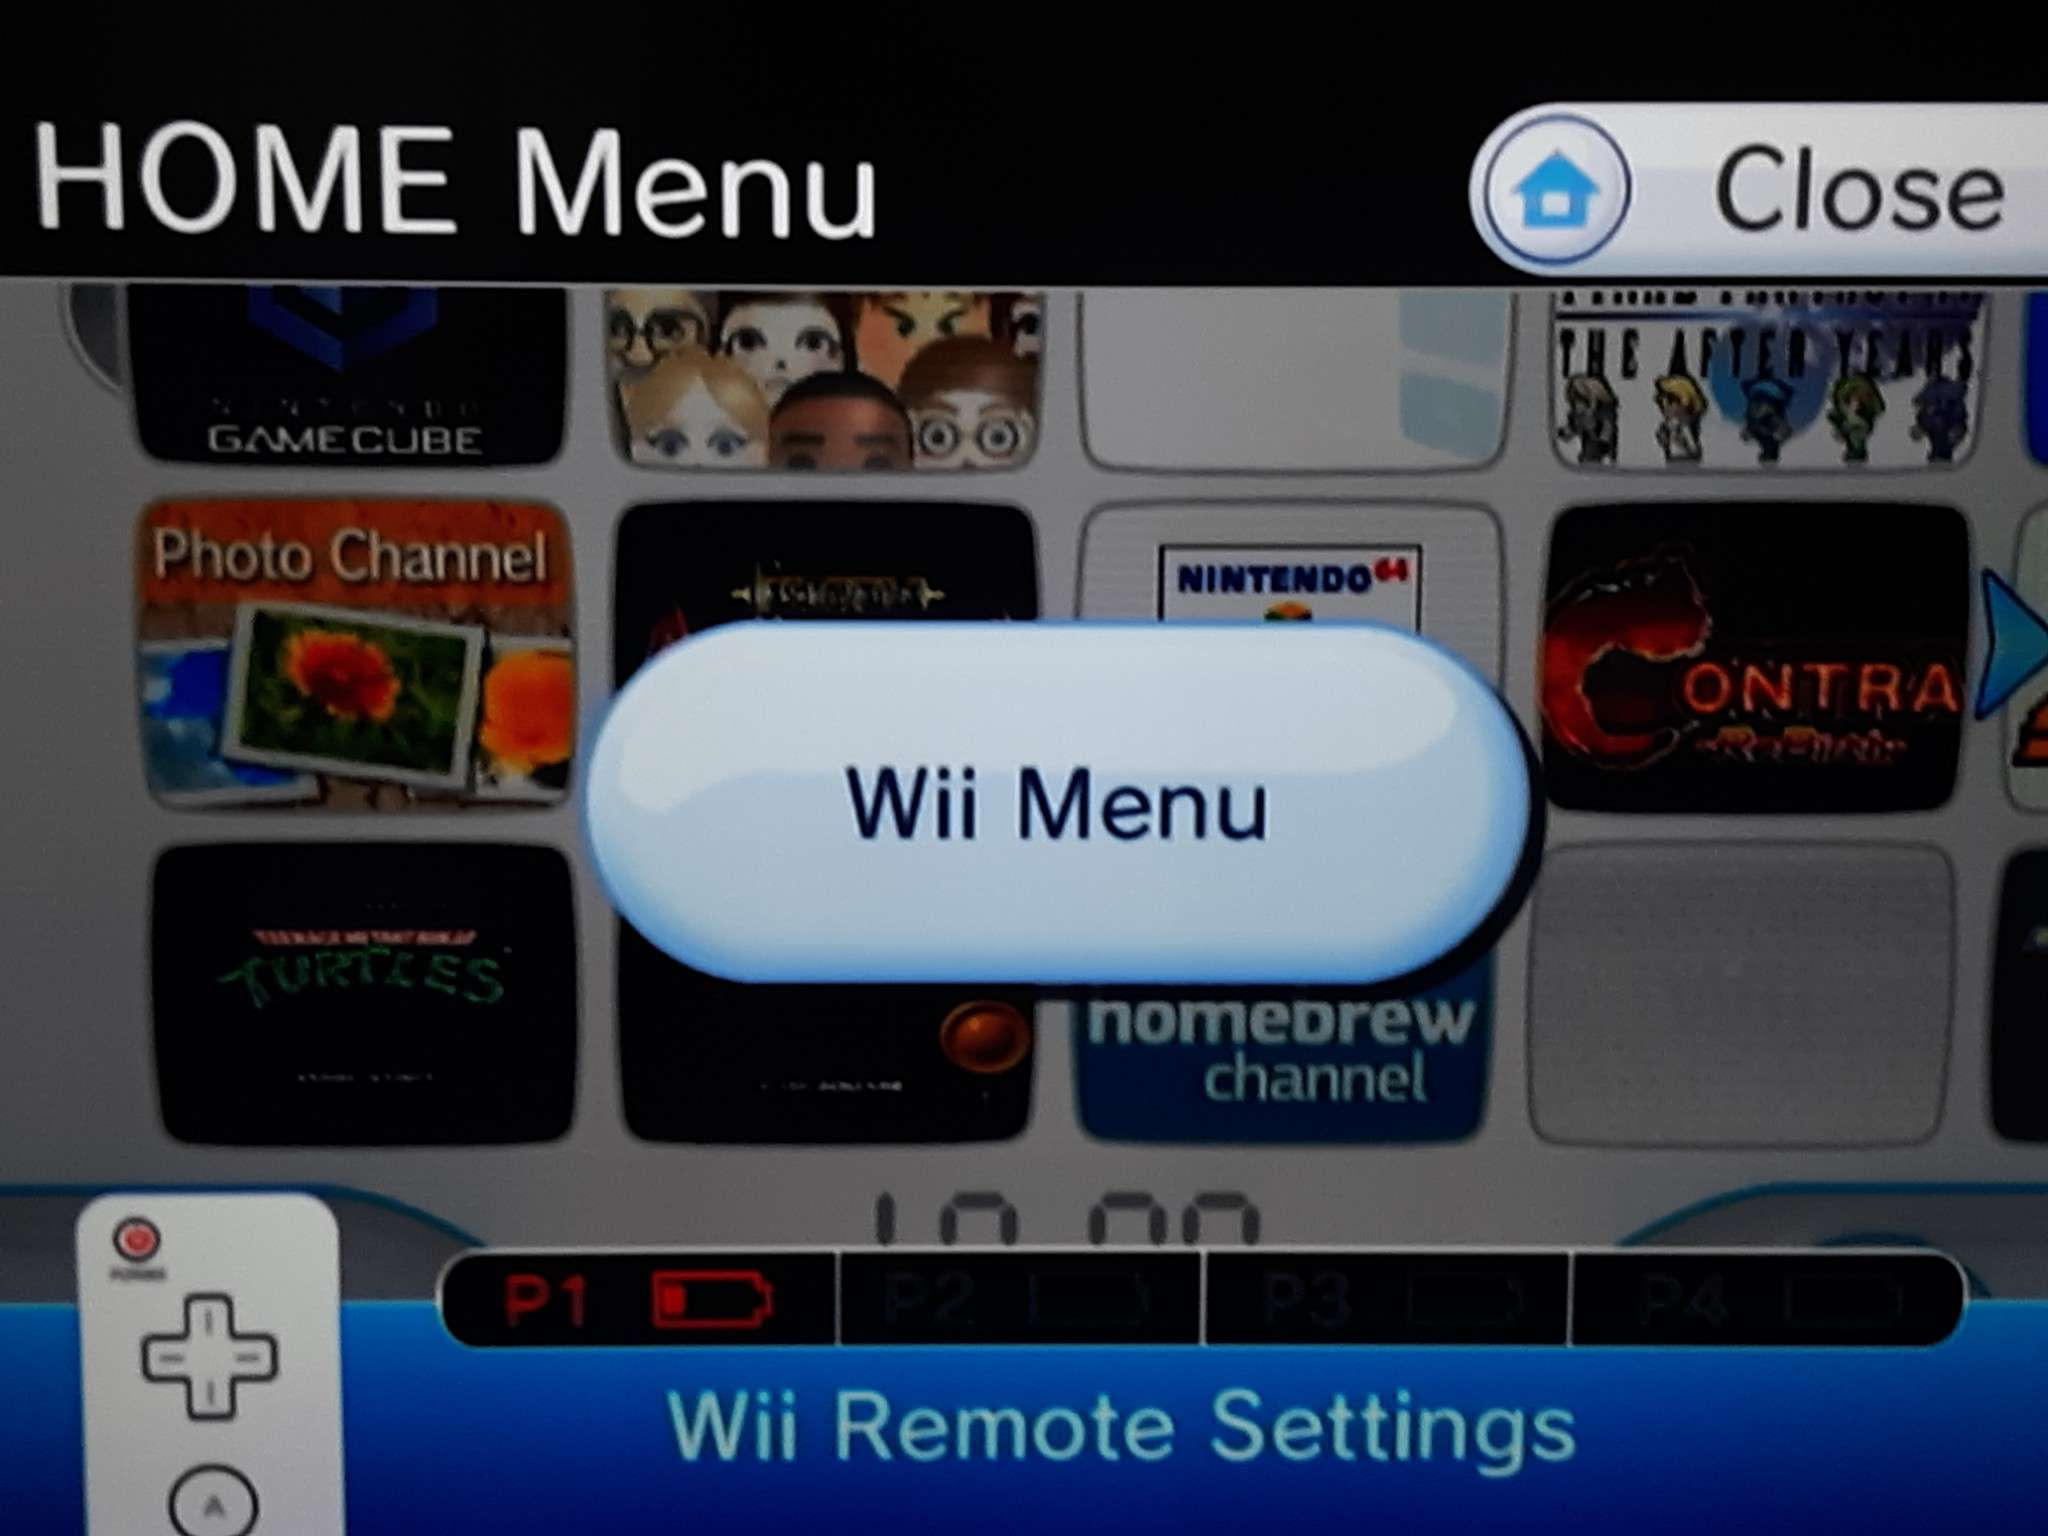 Wii Remote Settings on the Wii Home Menu